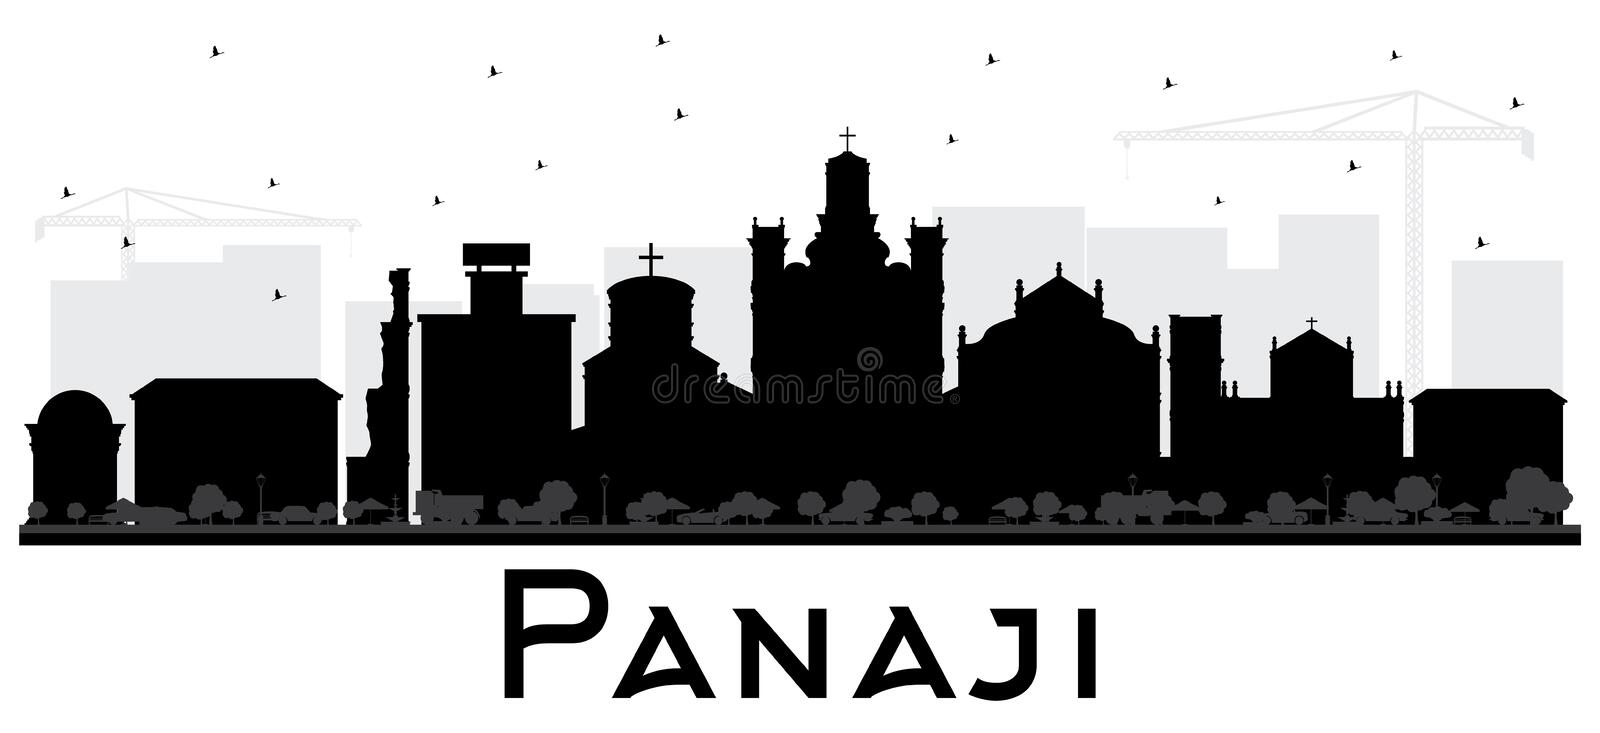 Panaji India City Skyline Silhouette with Black Buildings Isolated on White. Vector Illustration. Business Travel and Tourism Concept with Historic vector illustration